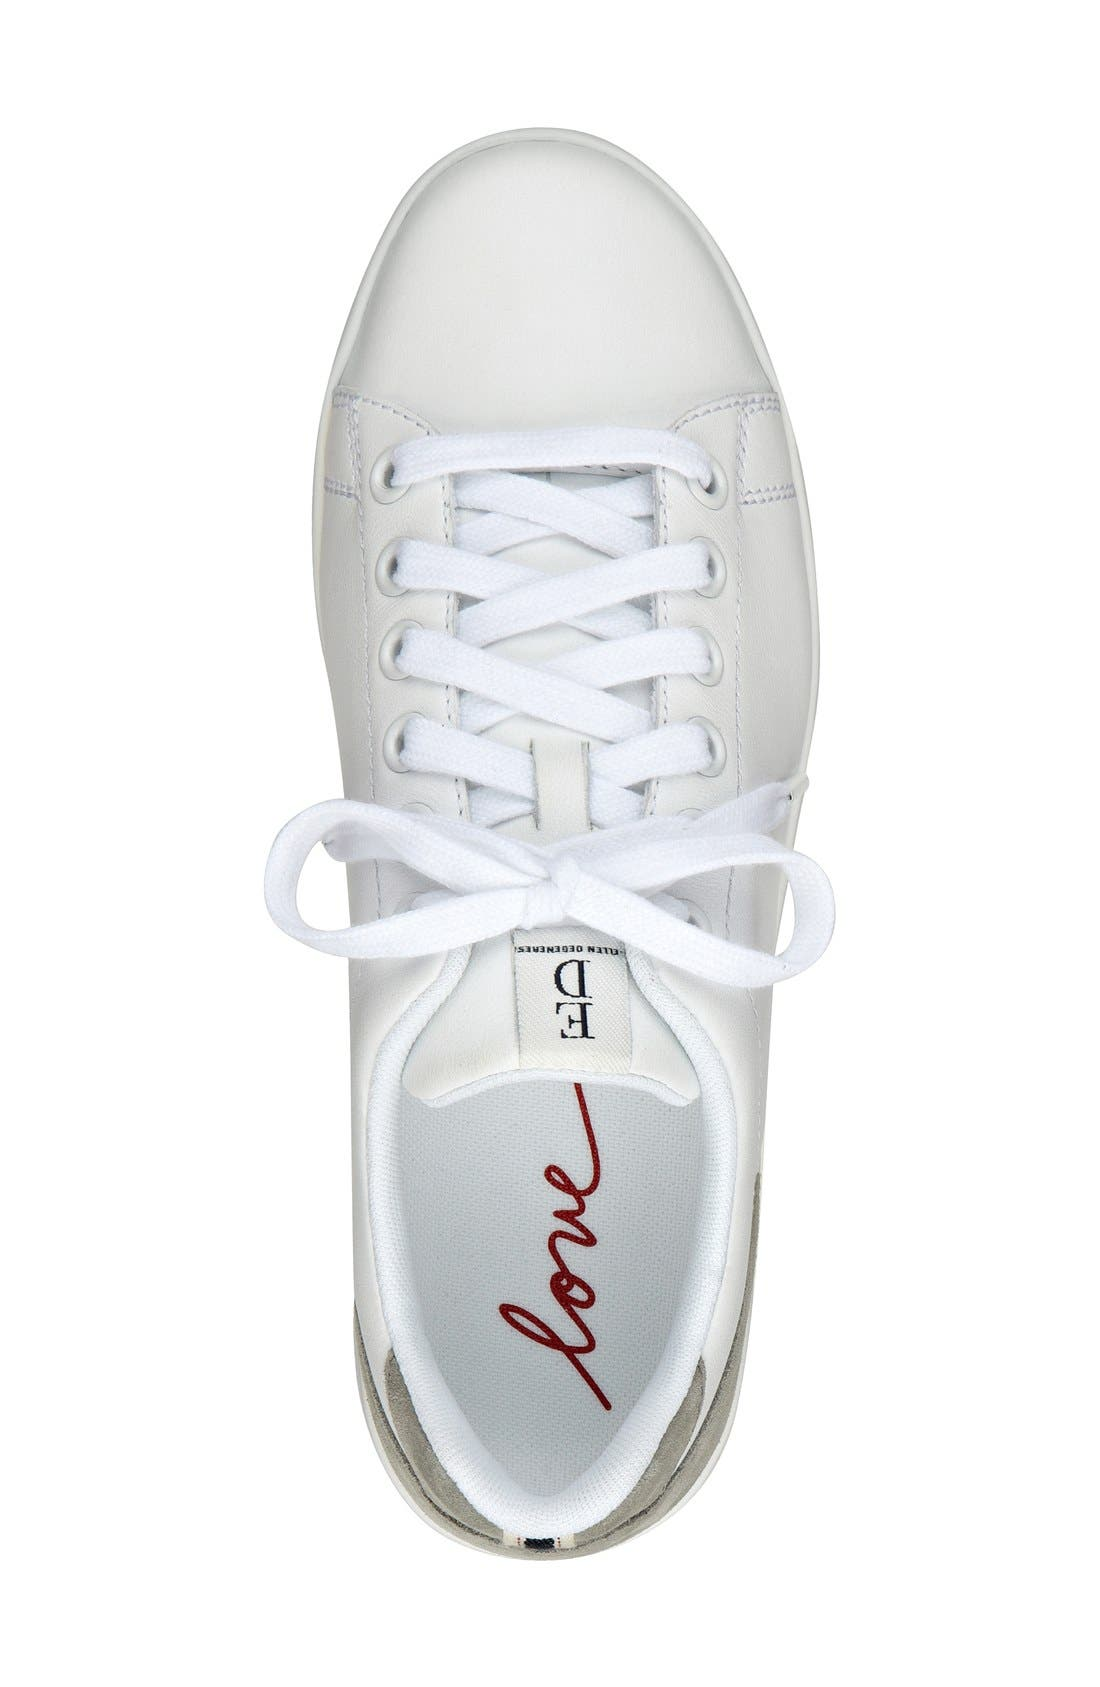 'Chapala' Sneaker,                             Alternate thumbnail 5, color,                             PURE WHITE LEATHER/ STEEL GREY